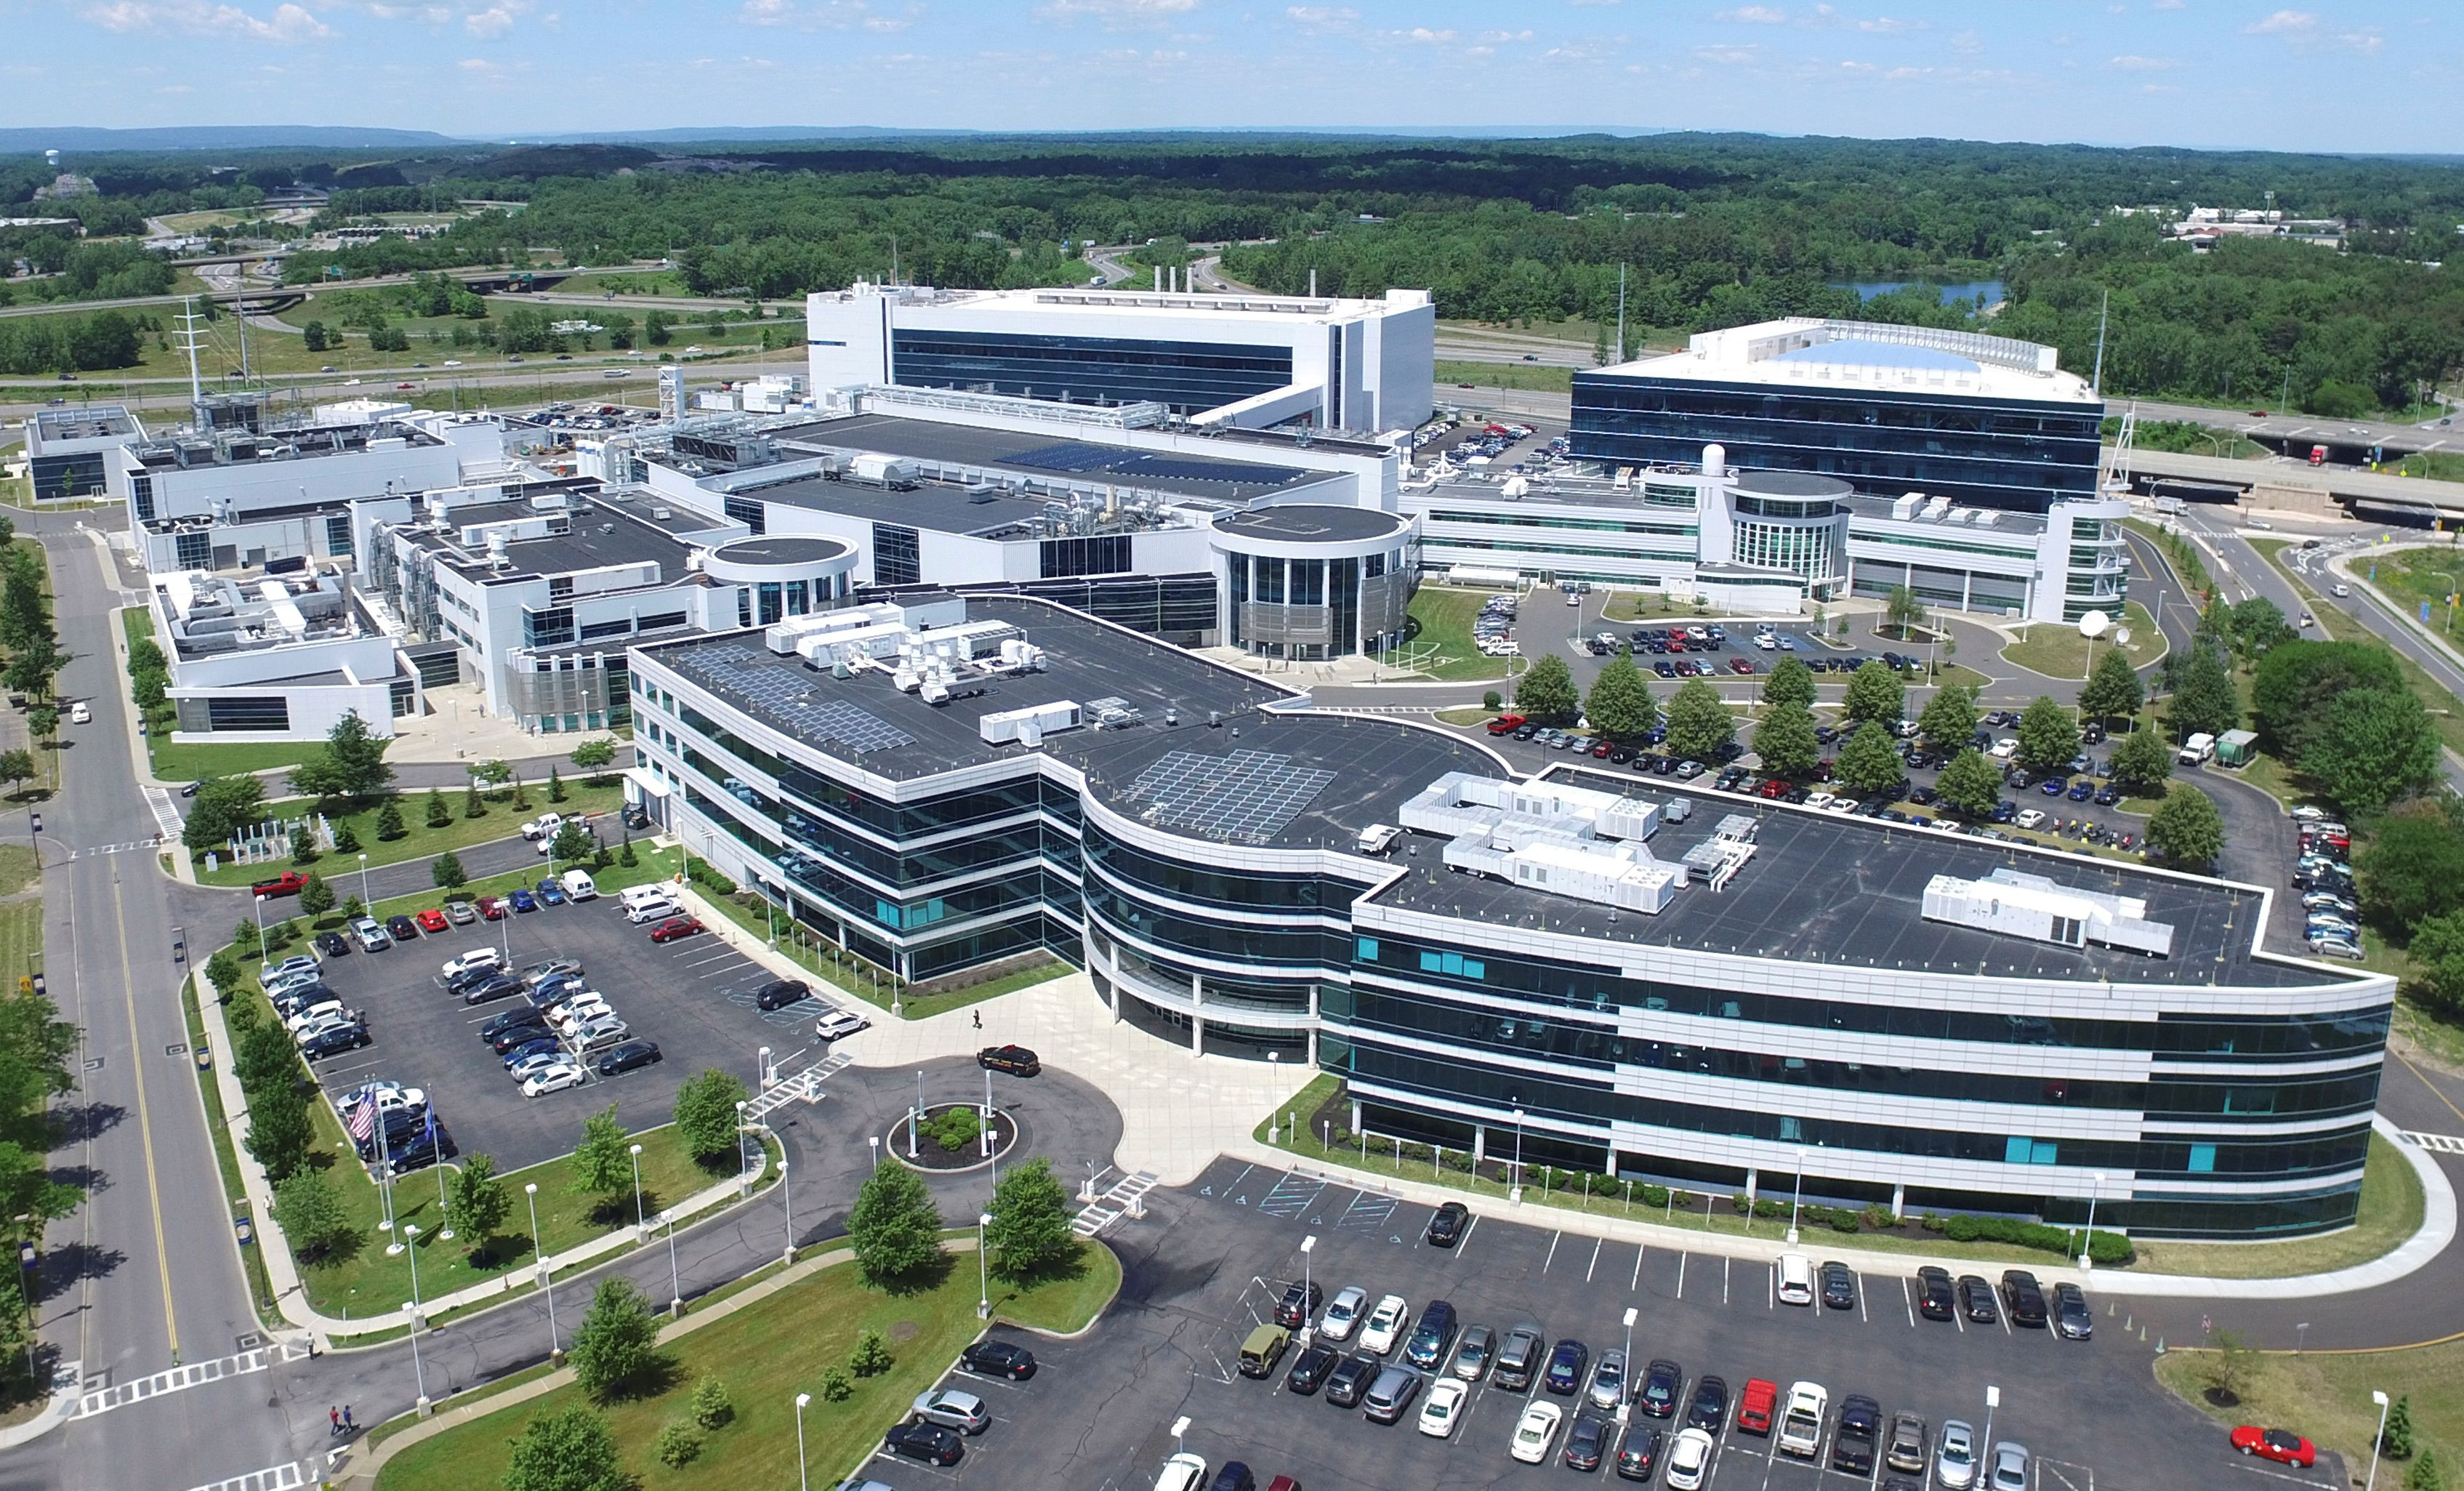 IBM's semiconductor research center in Albany, New York is seen in an undated handout photo provided on May 6, 2021. Courtesy of IBM Research/Handout via REUTERS